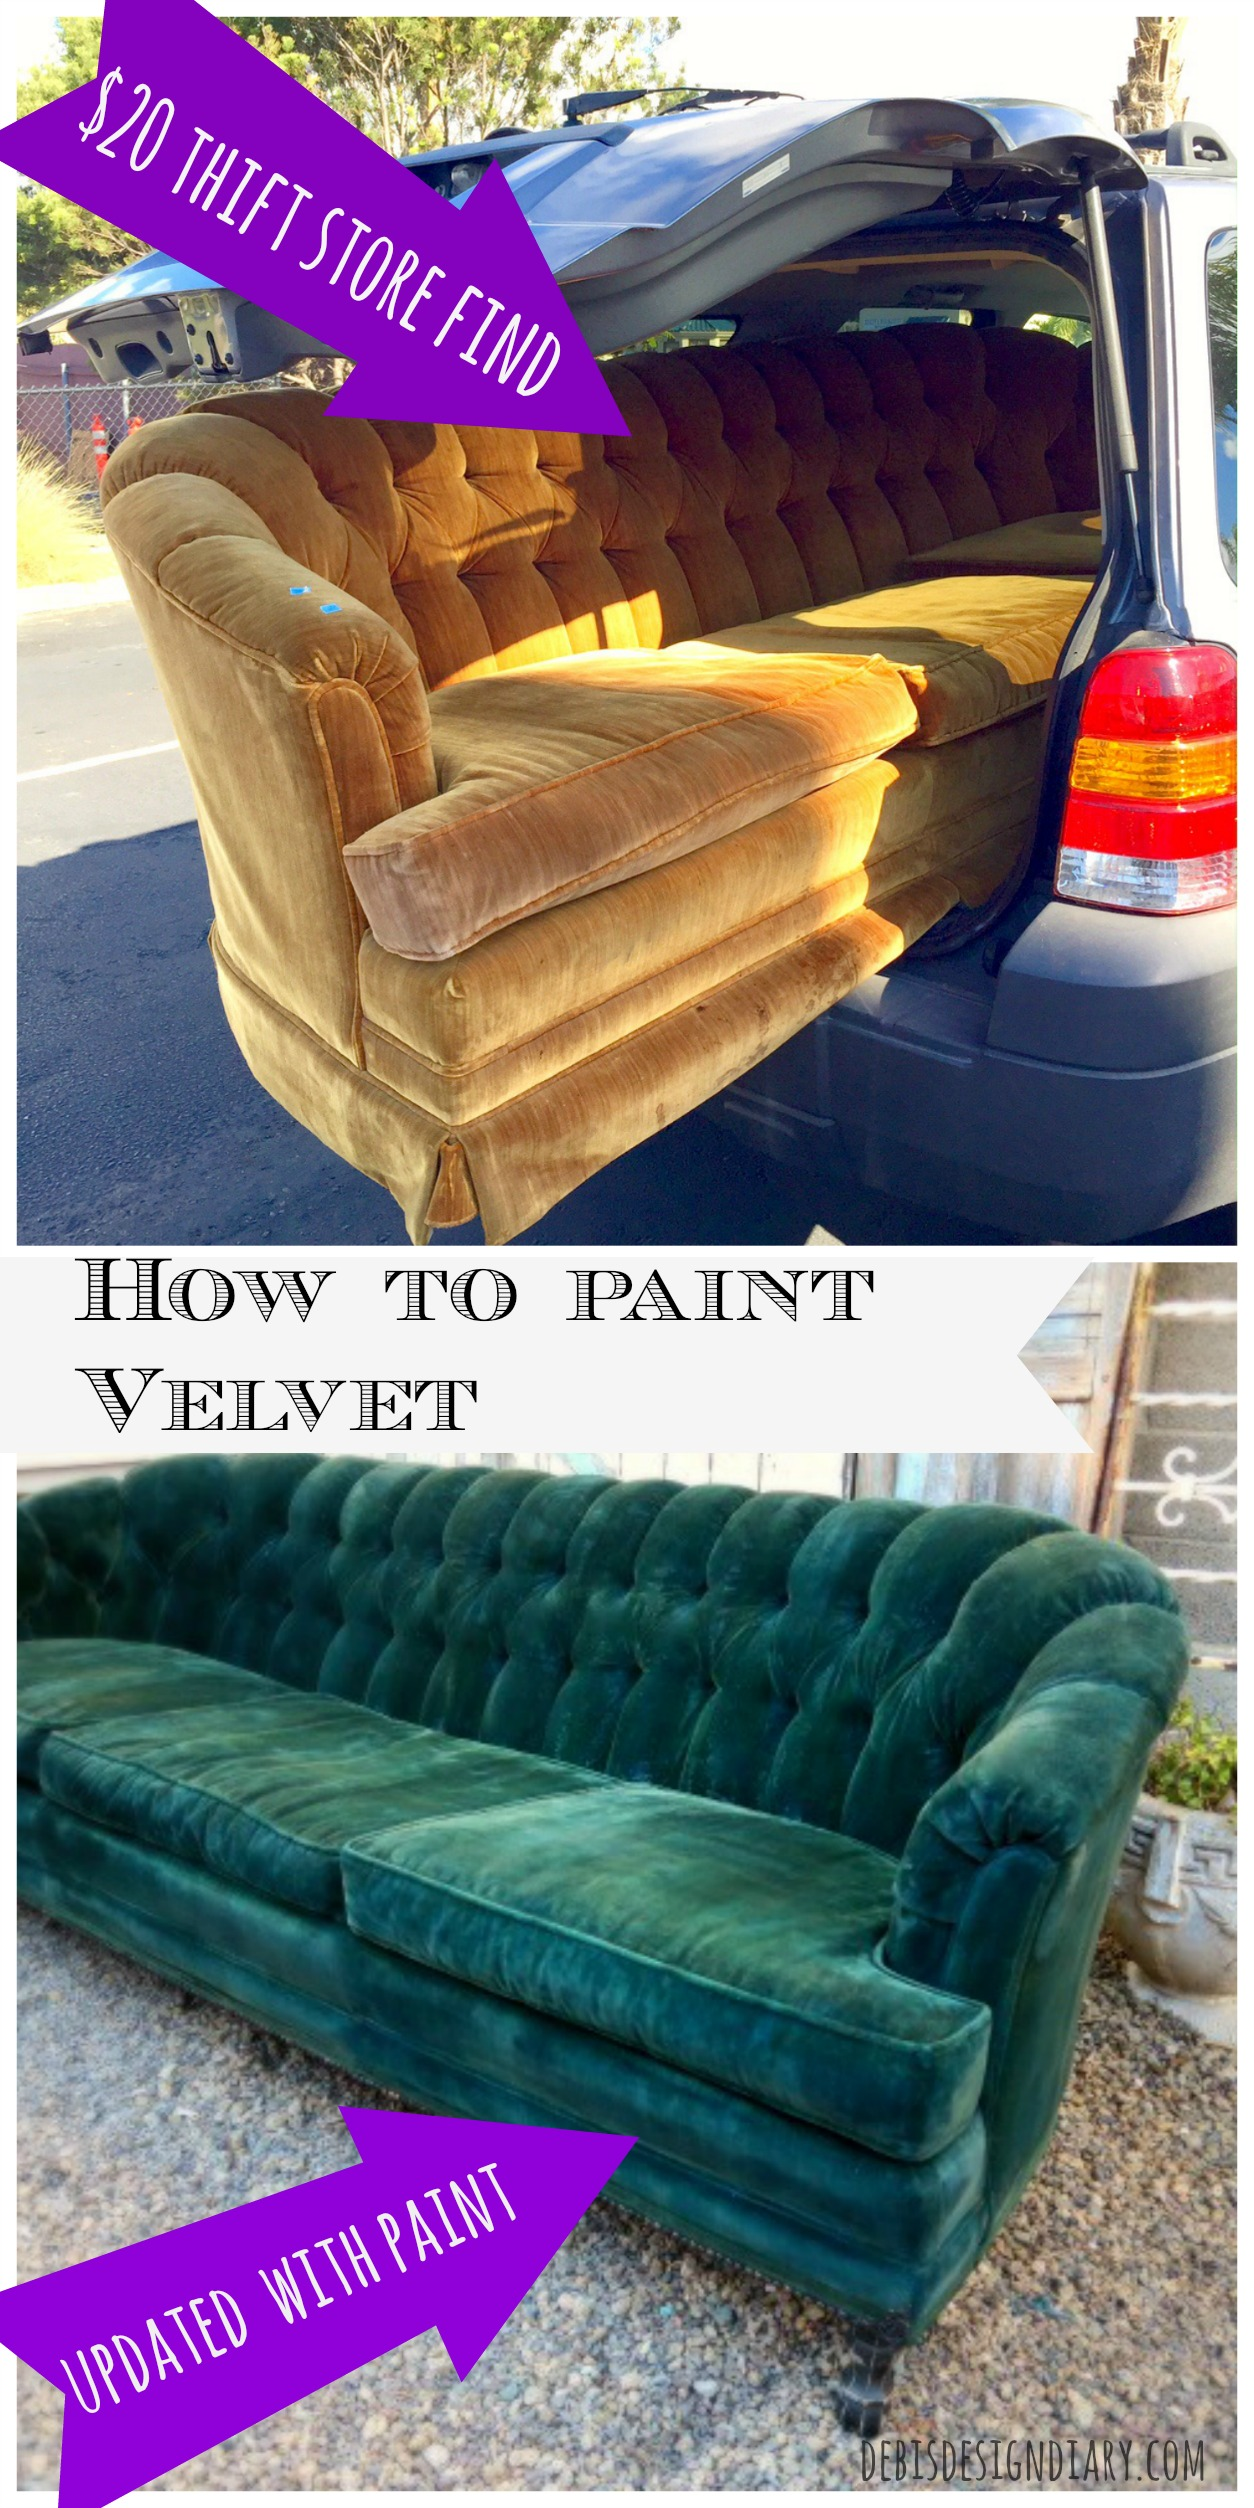 How To Paint Velvet Upholstery